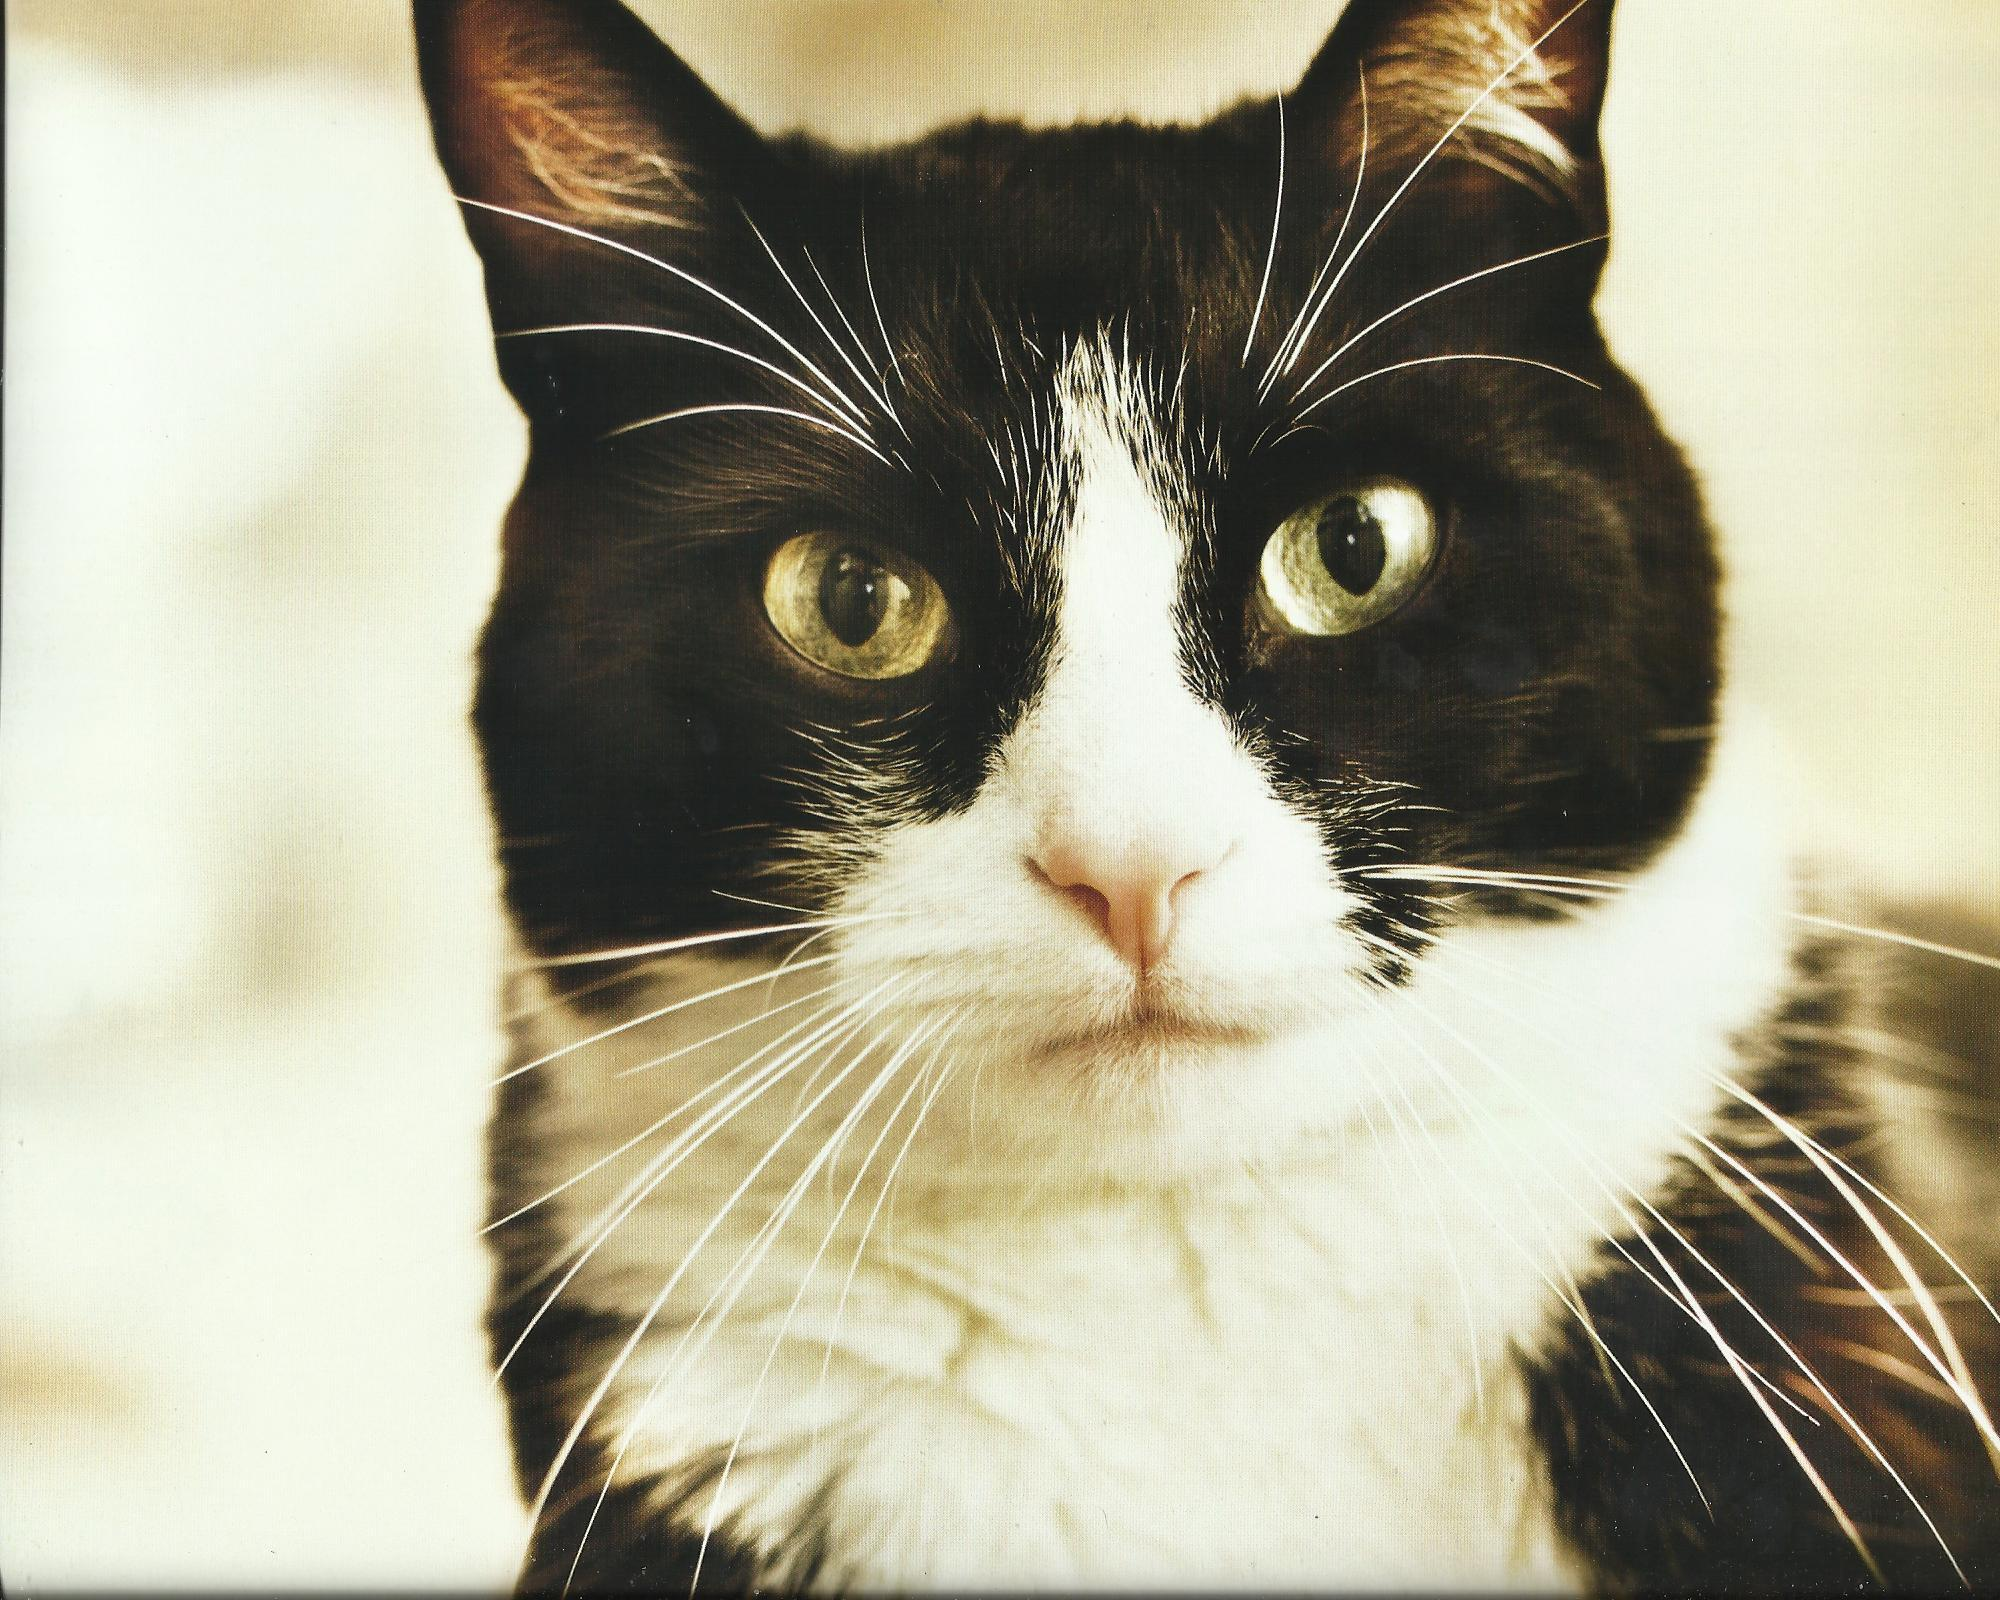 44 animal tuxedo cat wide hd wallpaper download tuxedo cat images 2000x1600